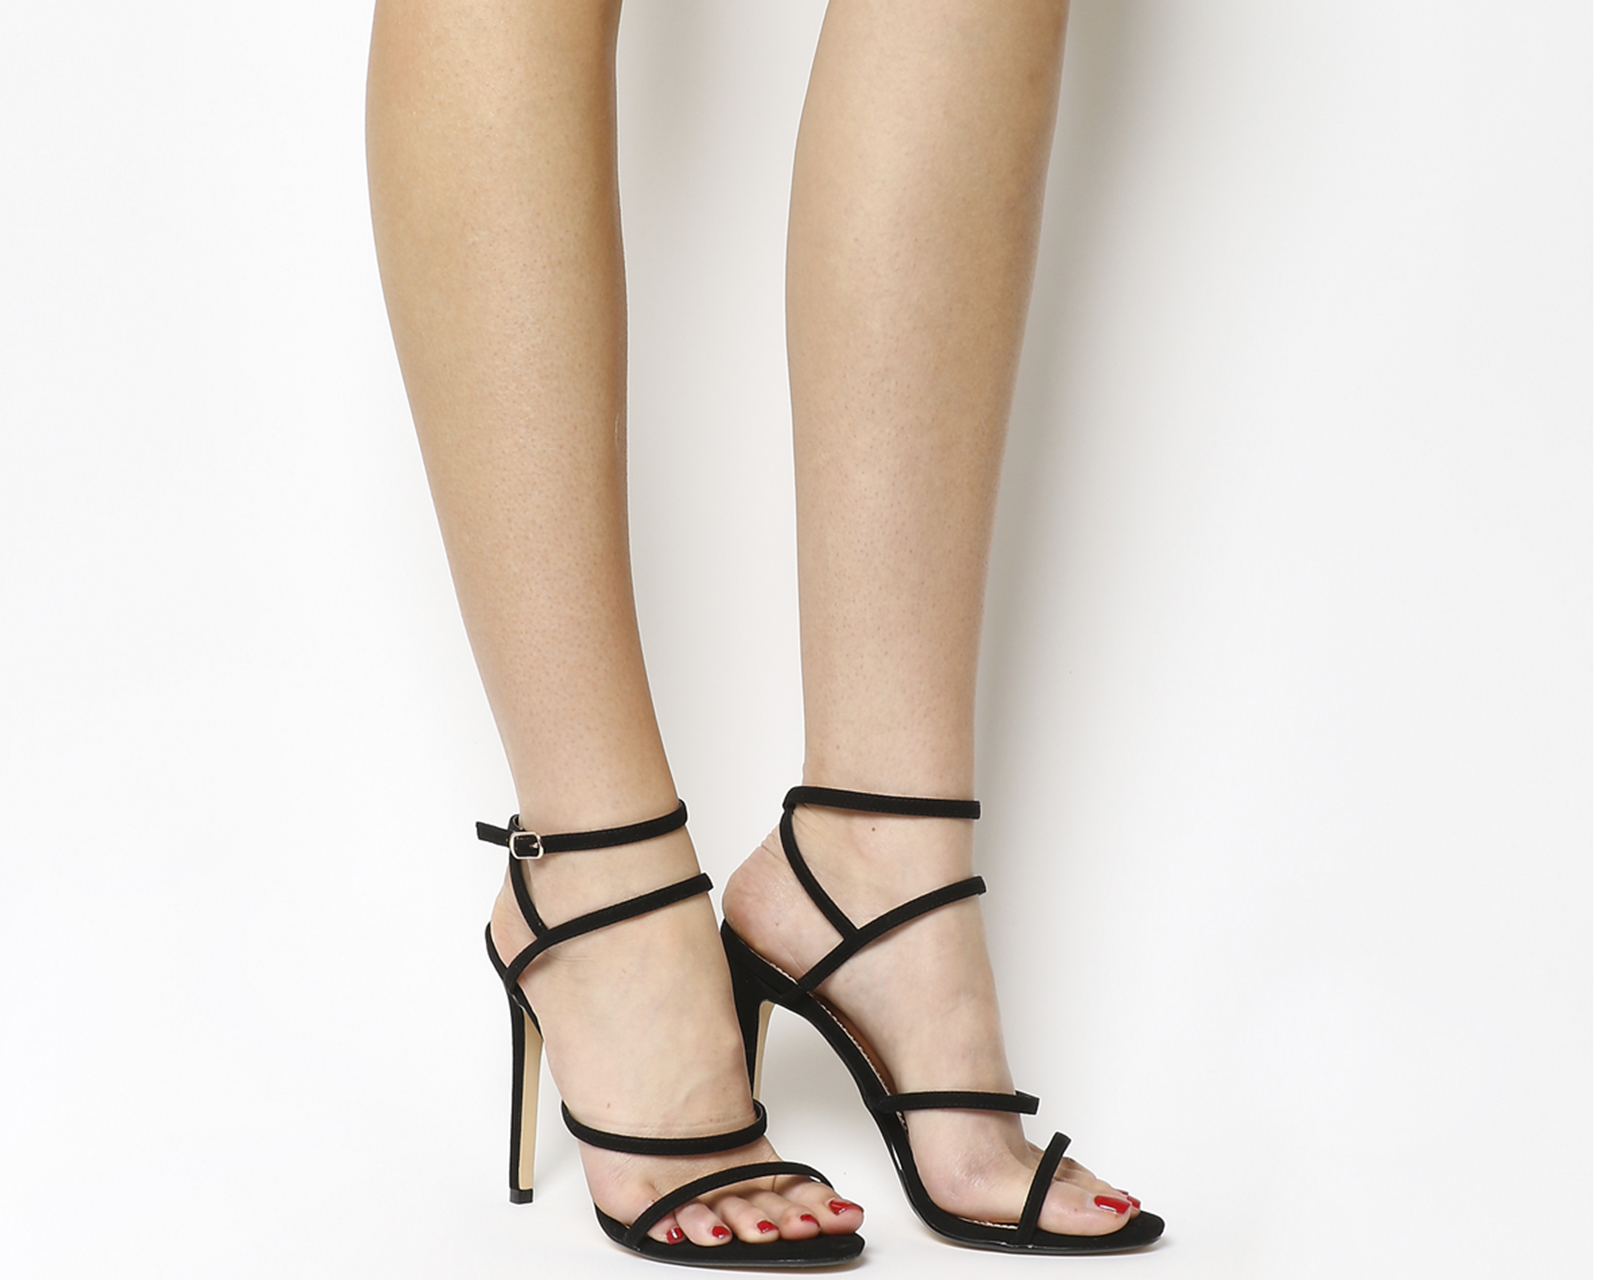 Halo Strappy Sandals